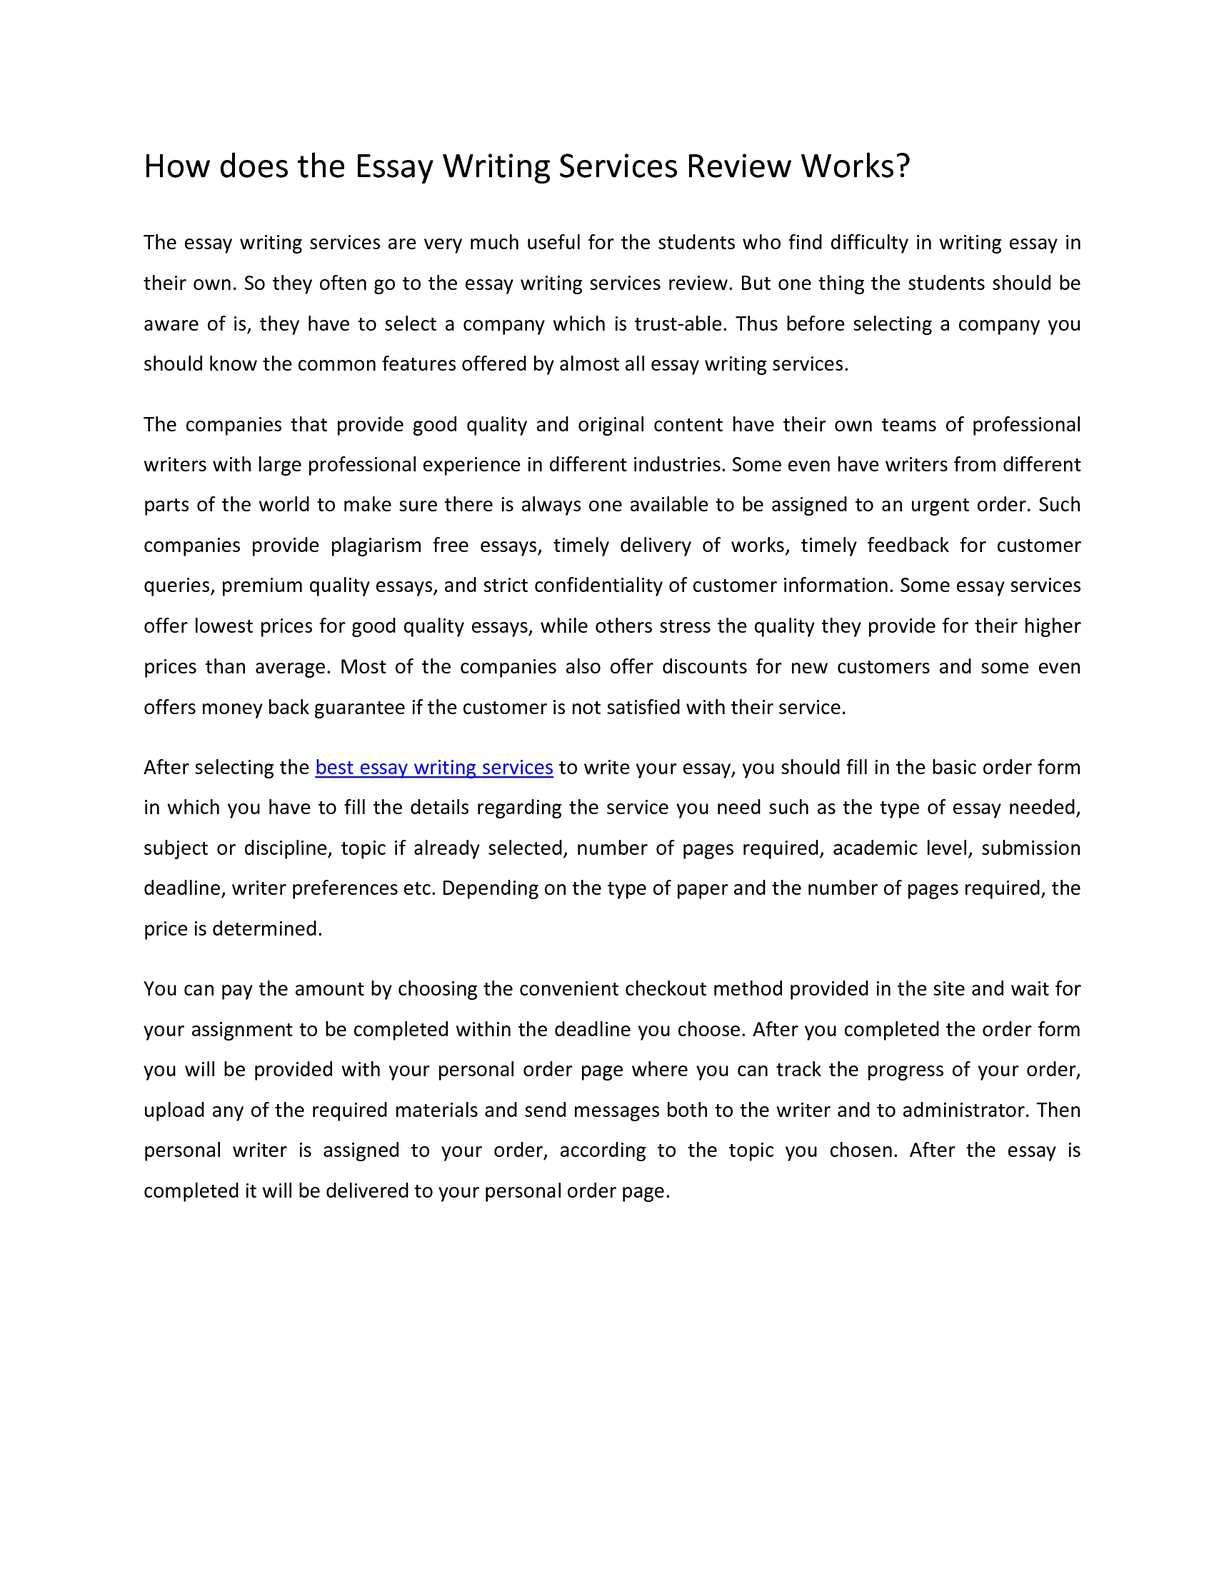 024 Essay Example P1 Best Help Impressive Review Writing Services Uk Reviews Service Full